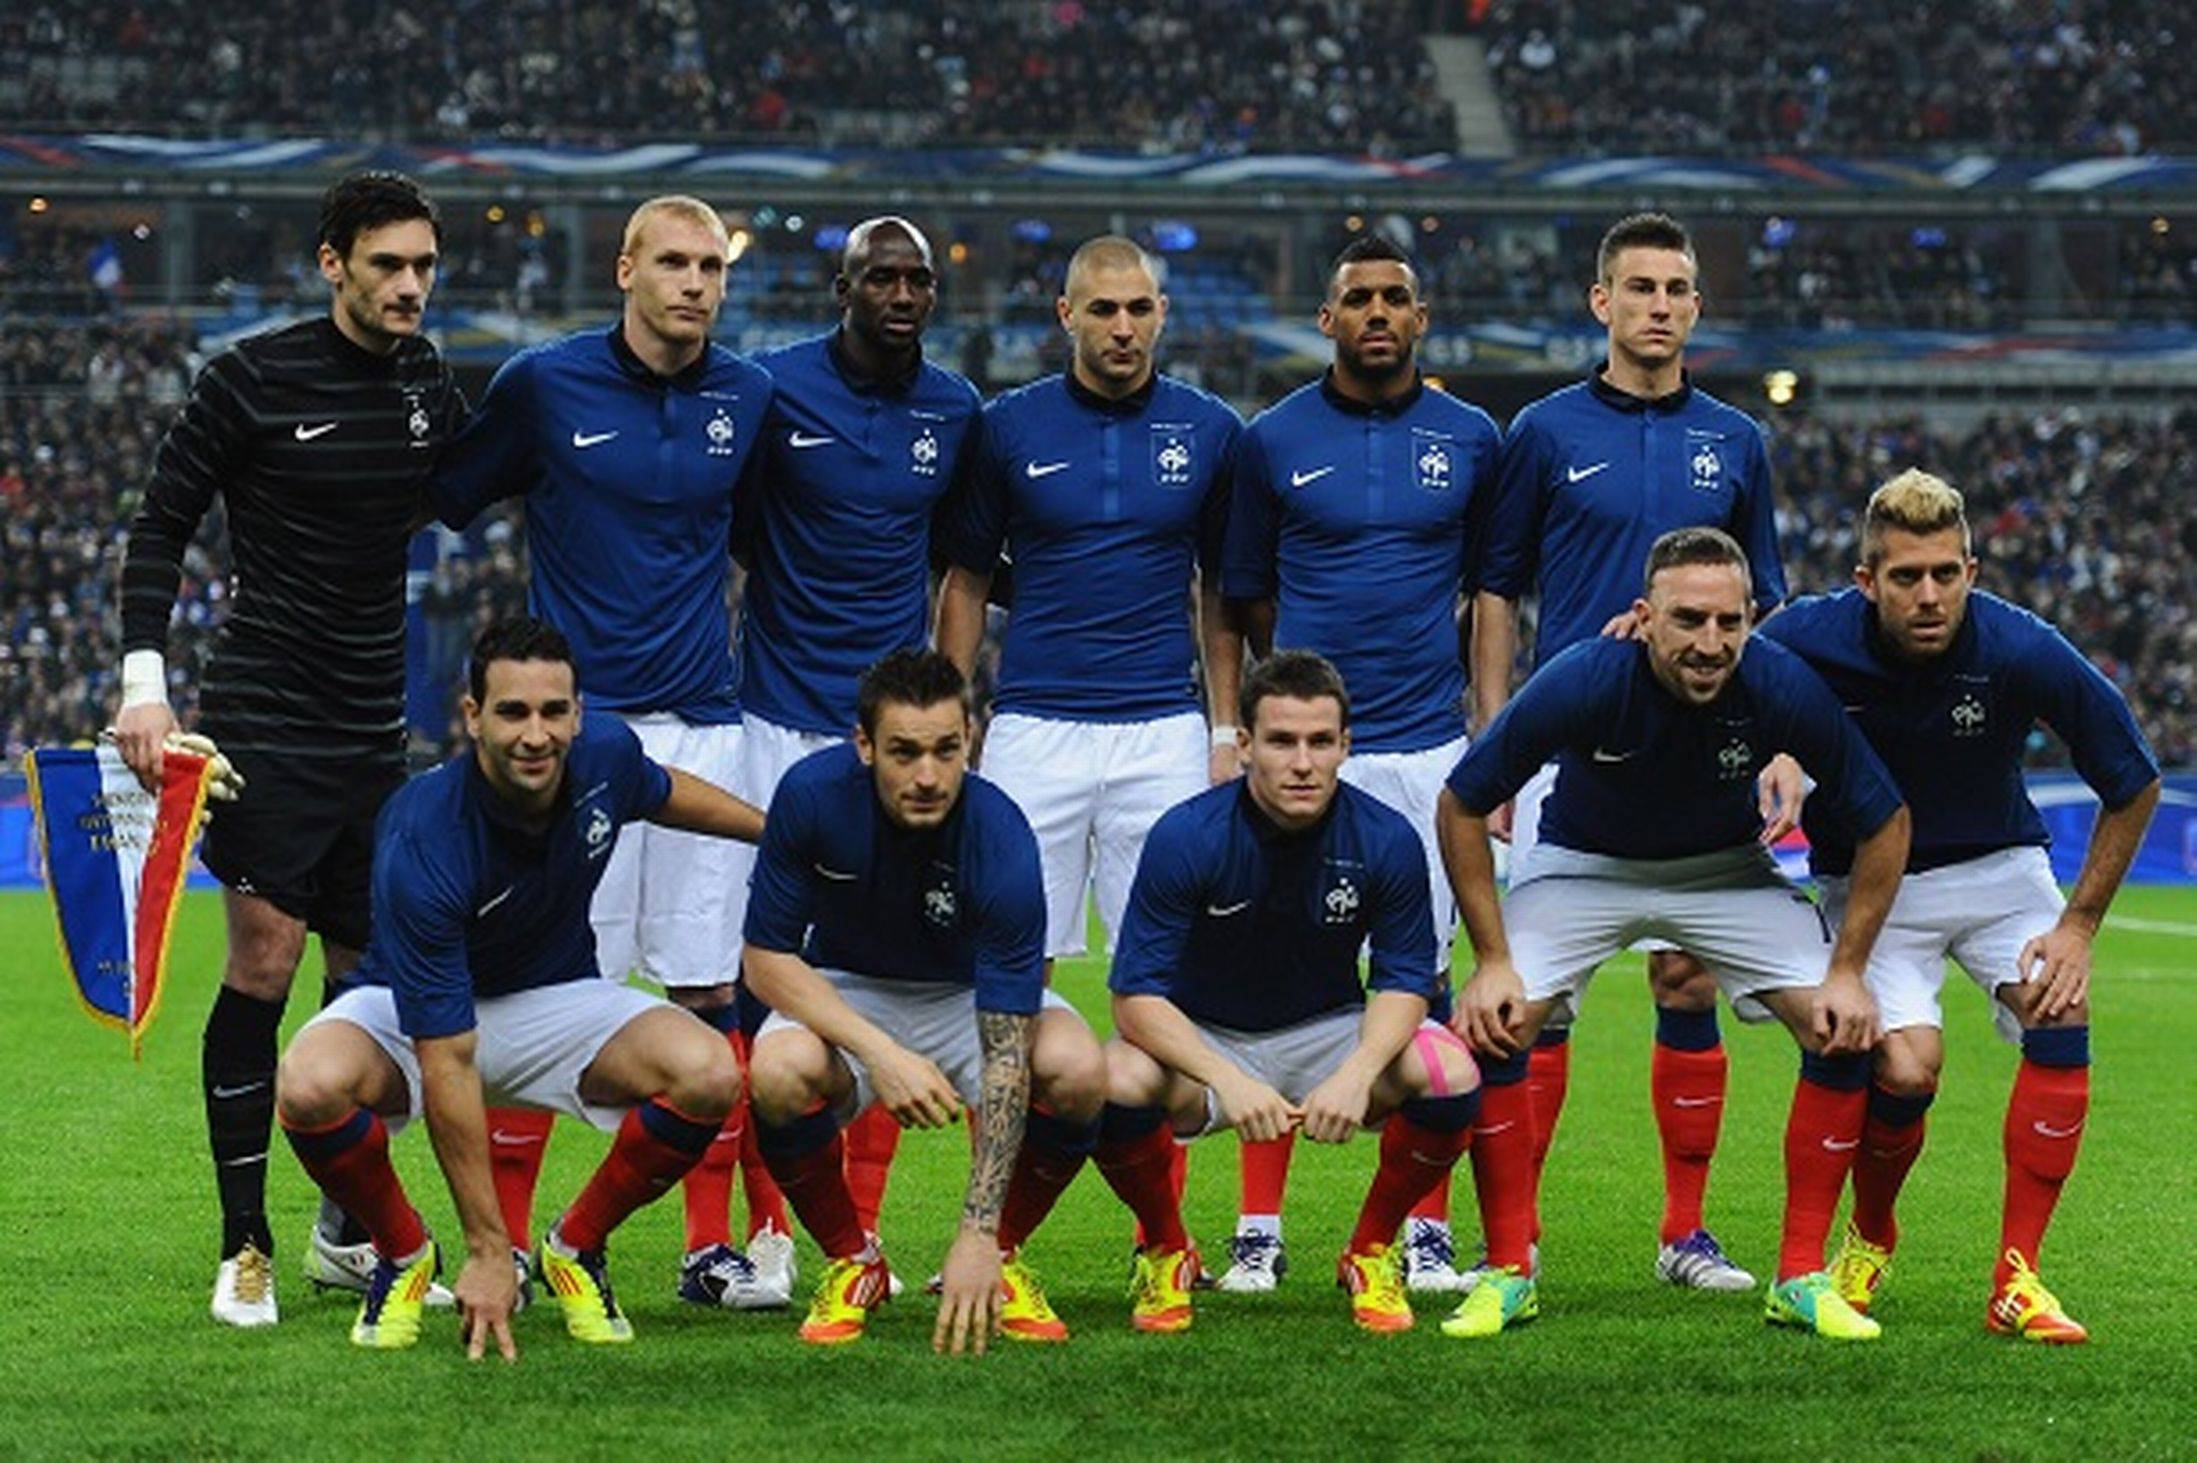 College football isn't only exciting, it's also big business. France Soccer Team Wallpapers Wallpaper Cave